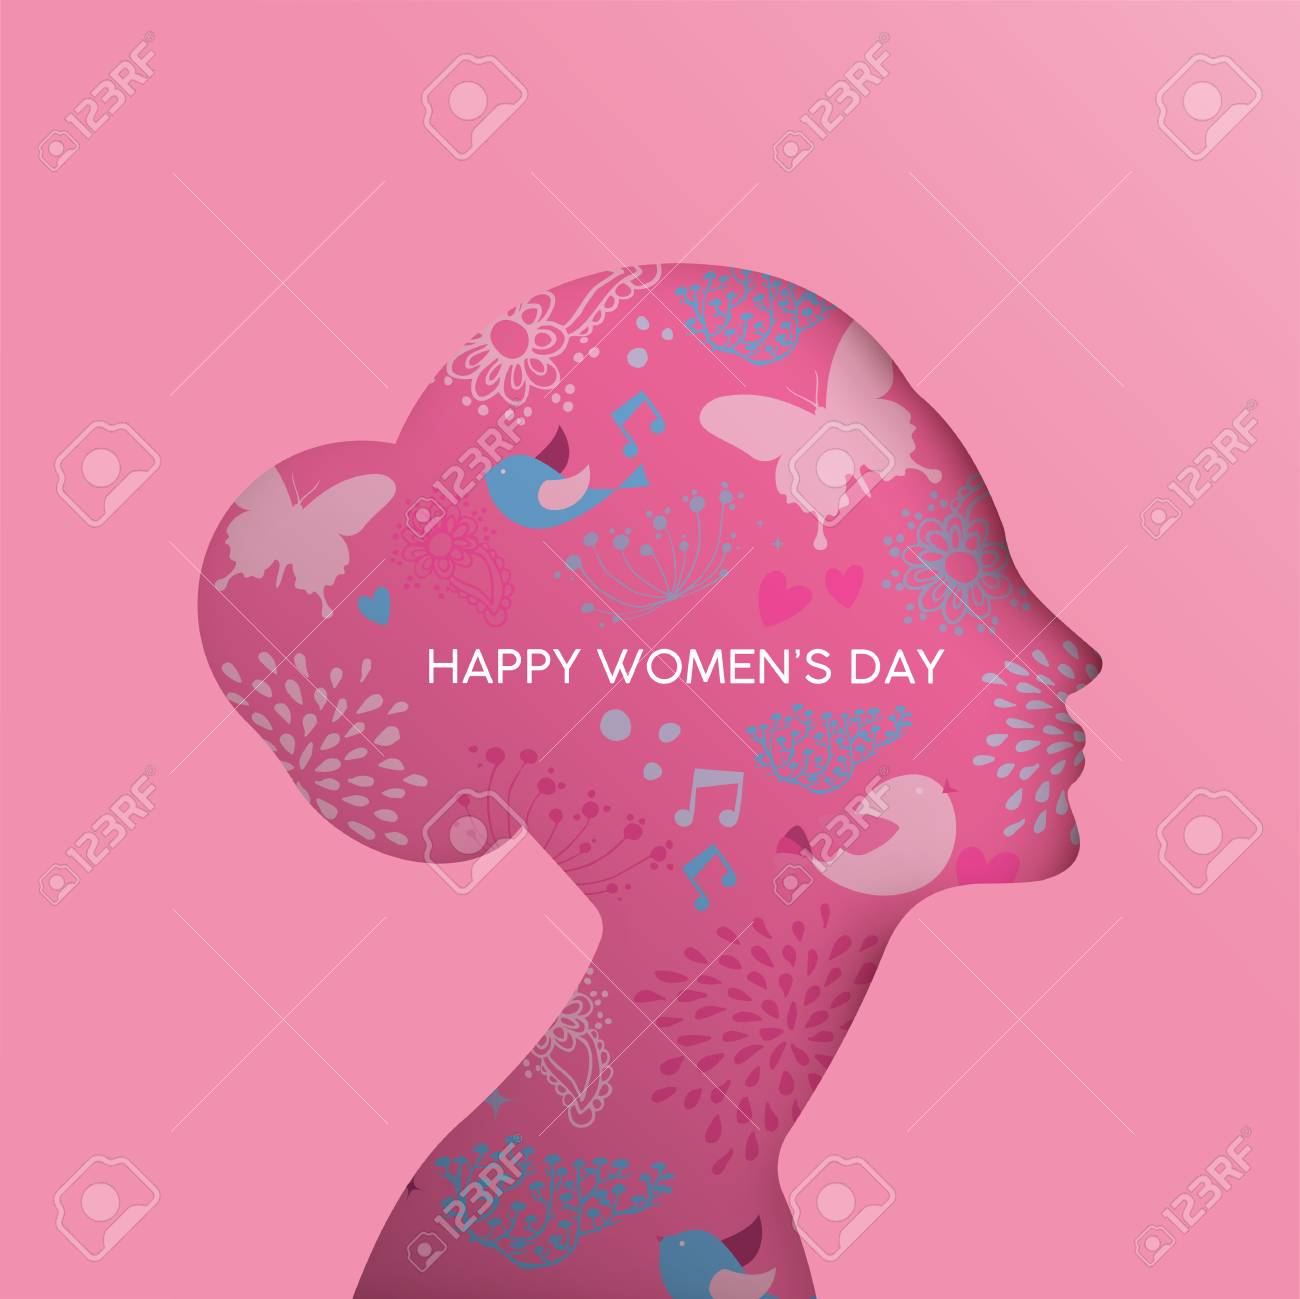 Happy Womens Day holiday greeting card illustration. Paper cut girl head silhouette cutout with hand drawn spring and nature doodles. EPS10 vector. - 95530144